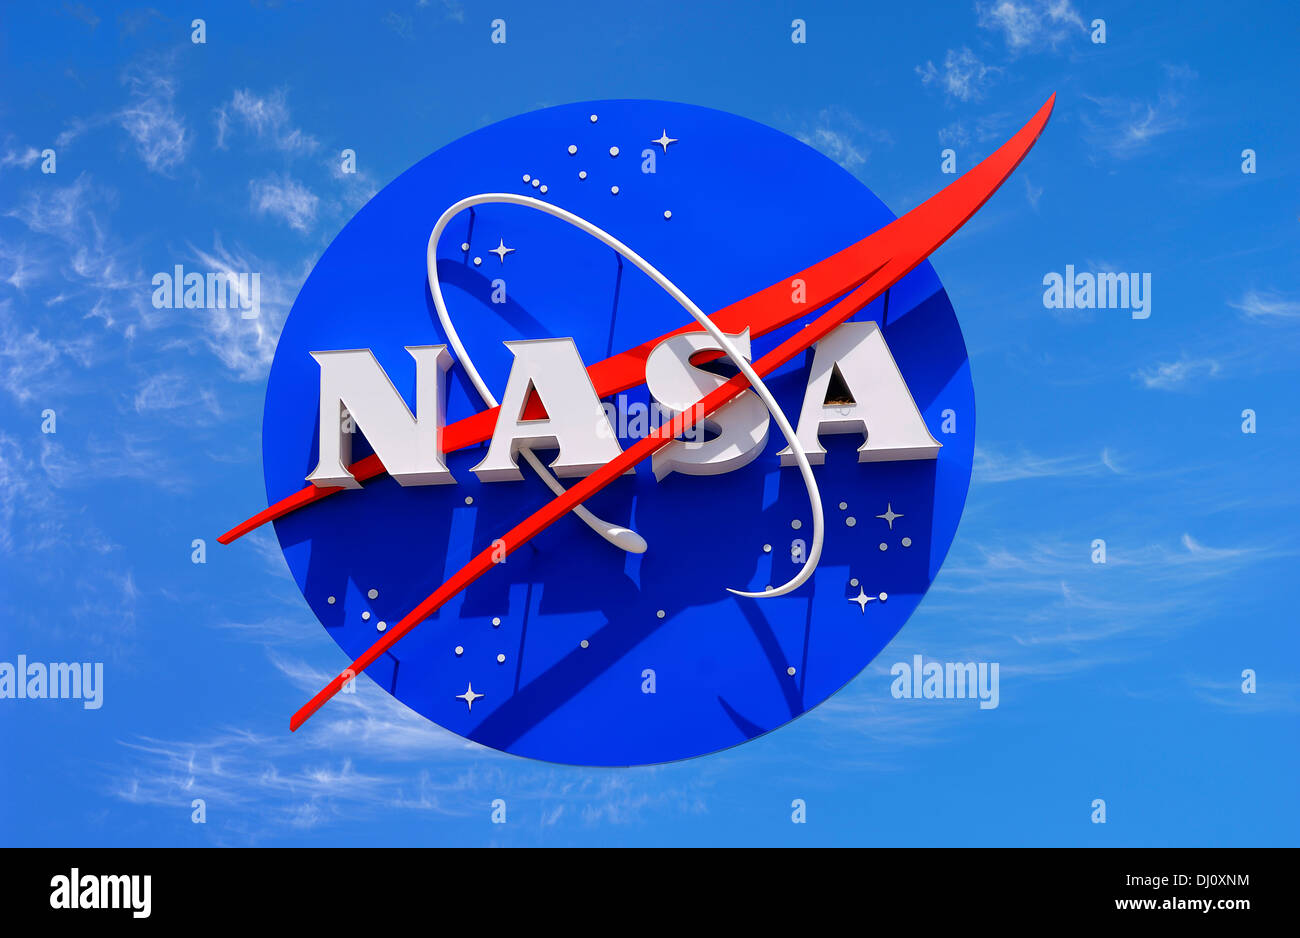 The insignia of NASA at the Space Center in Florida. USA. National Aeronautics and Space Administration. Stock Photo